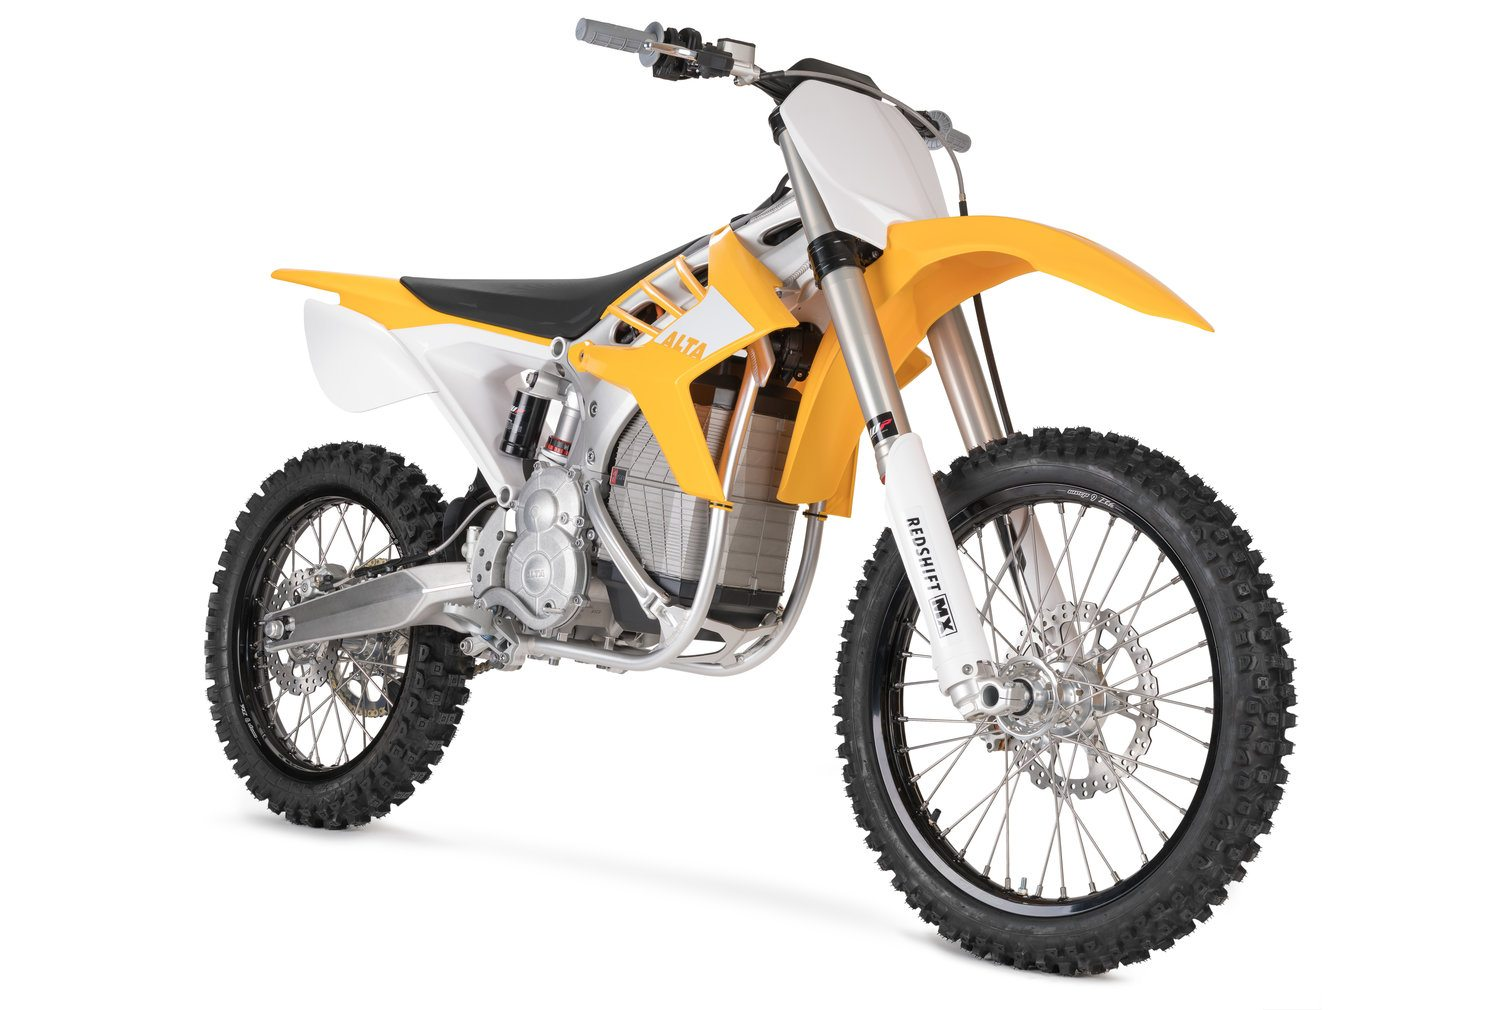 2018 Alta Motors Redshift MX in Orange, California